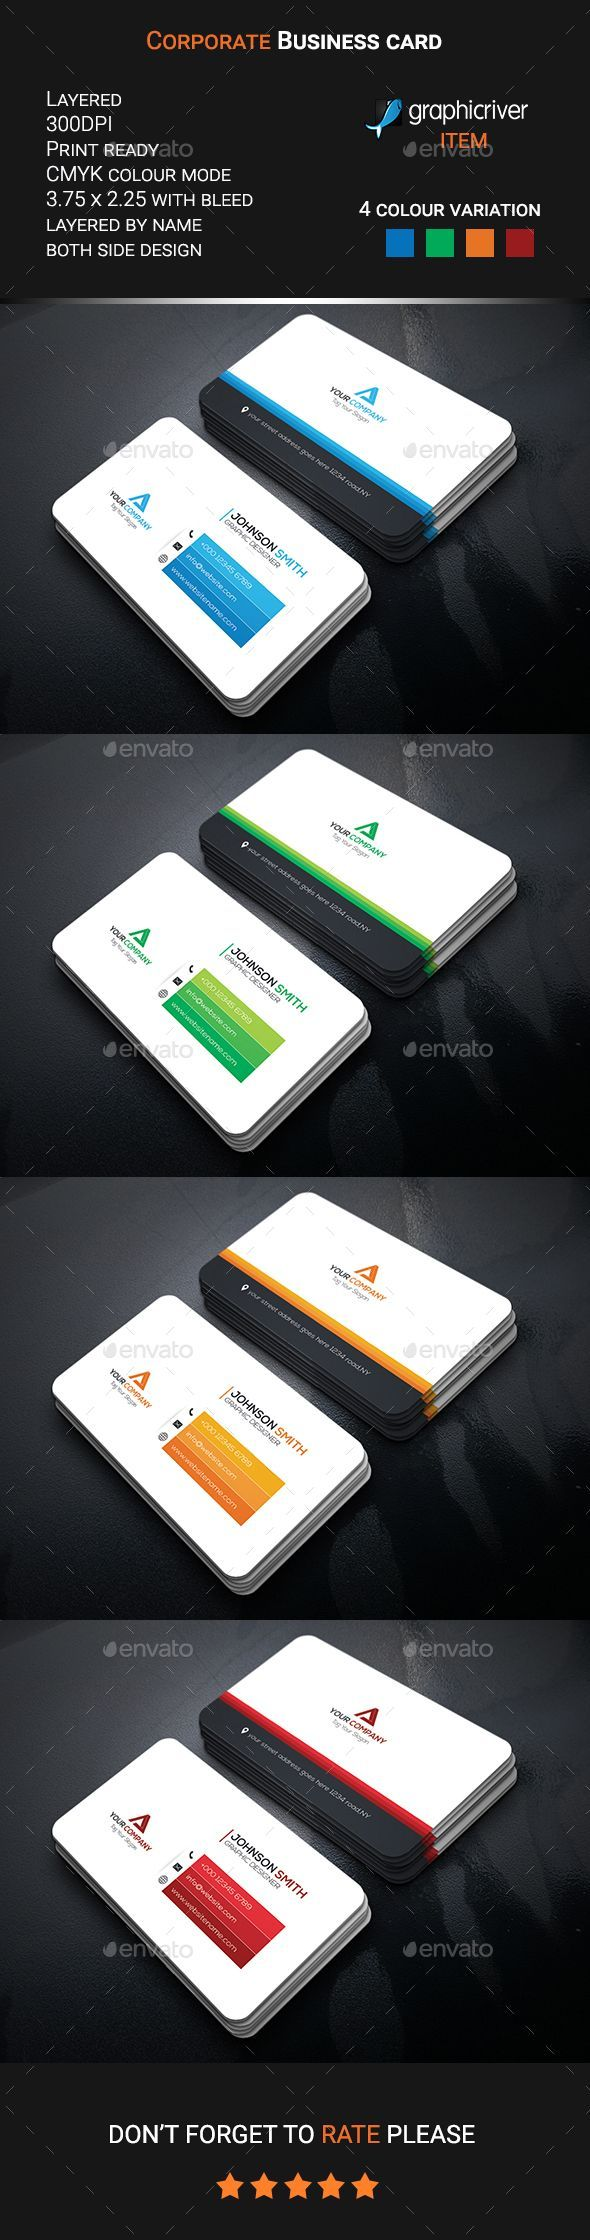 Corporate Business Card - Corporate Business Cards Download here : https://graphicriver.net/item/corporate-business-card/19717170?s_rank=3&ref=Al-fatih